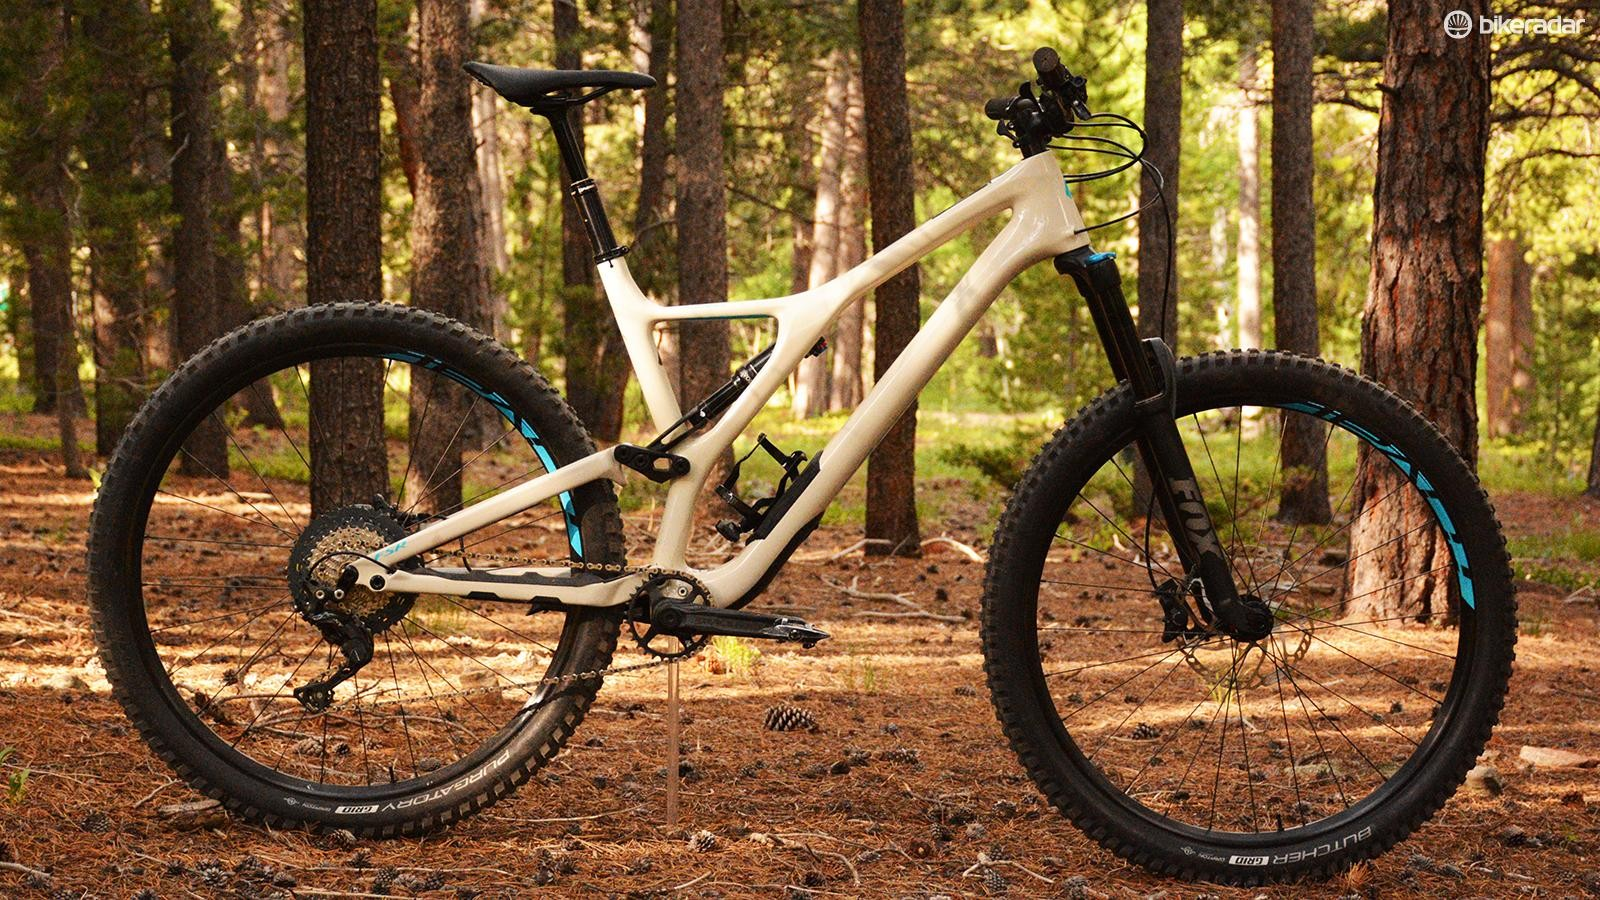 Specialized's Stumpjumper Comp Carbon 29 is the brand's entry level carbon trail bike